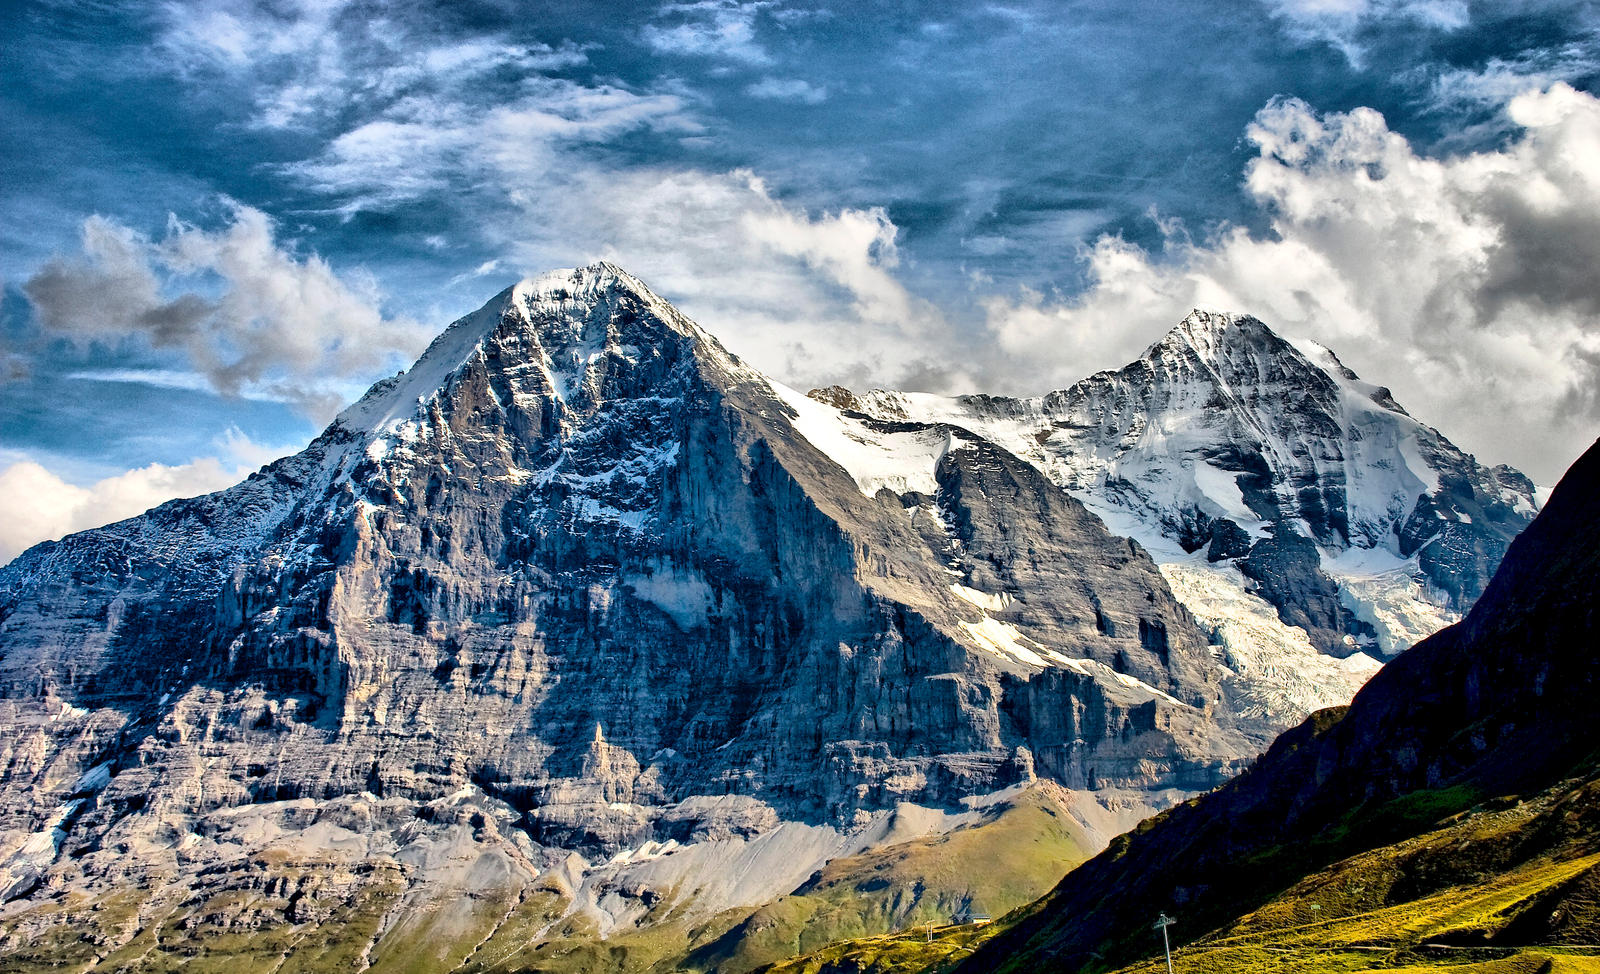 Eiger north face by bongaloid on deviantart eiger north face by bongaloid eiger north face by bongaloid reheart Images